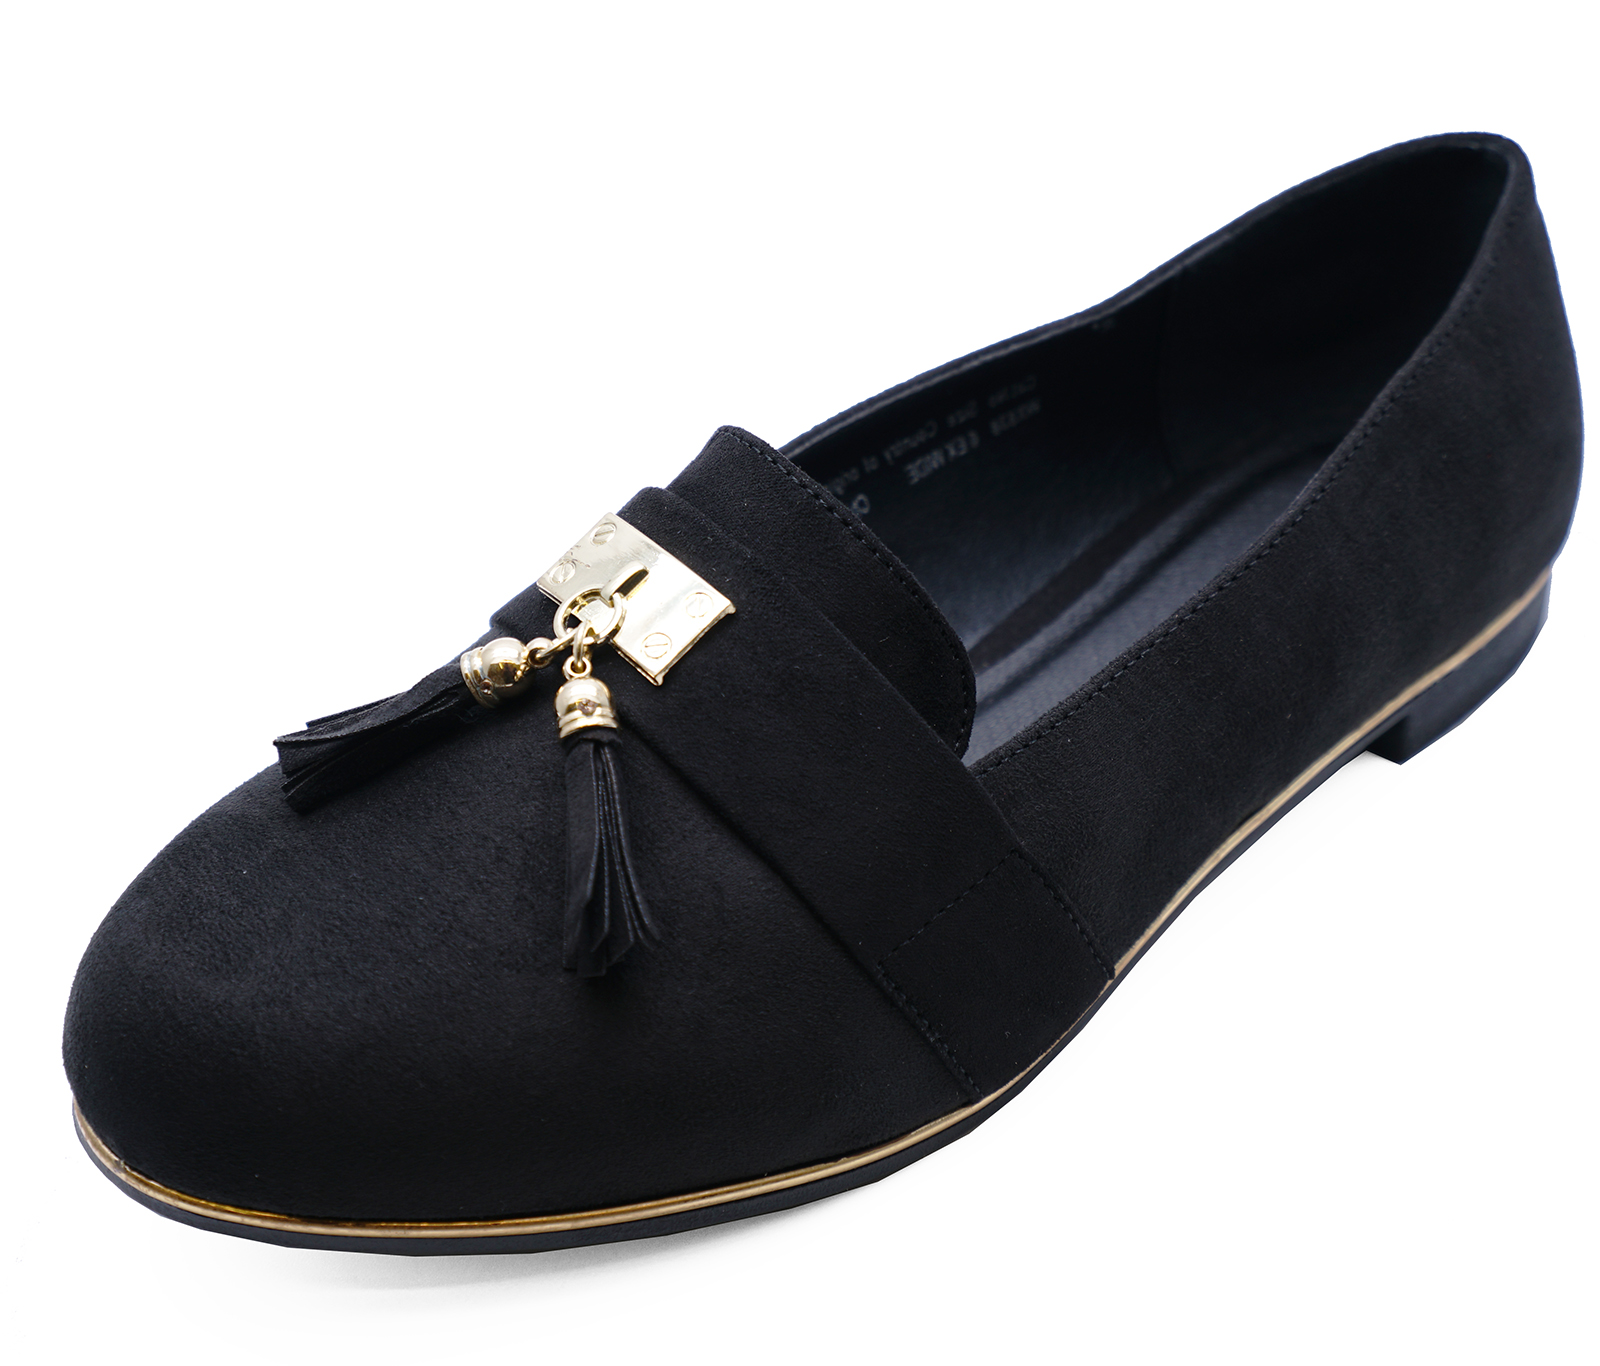 4865439b48f Details about LADIES BLACK WIDE-FIT EEE FLAT SLIP-ON LOAFERS COMFY WORK  SHOES PUMPS SIZES 4-9